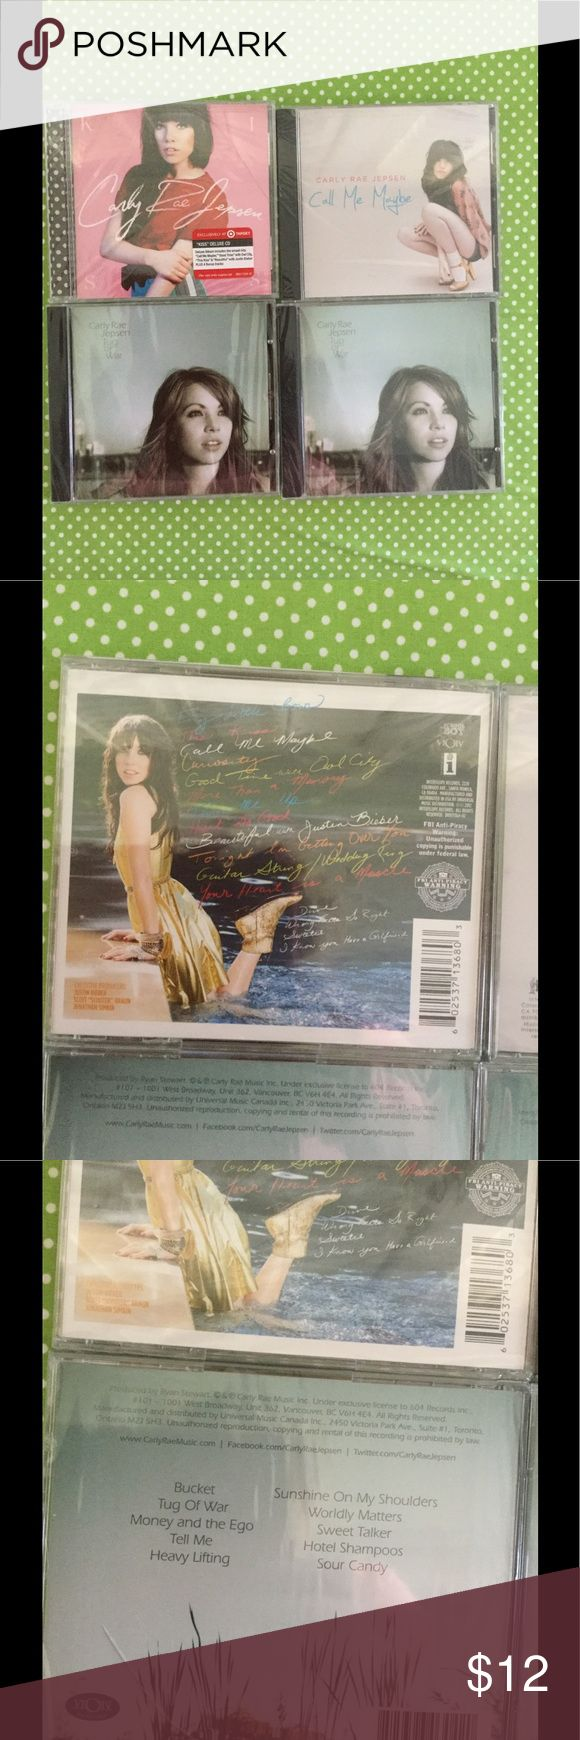 CARLY RAE JEPSEN MUSIC Carly Rae Jepson Music CD's (4): Call Me Maybe: Carly Rae Jepsen: Carly Rae Jepsen Tug of War (2). All 4 for $12.00 Accessories